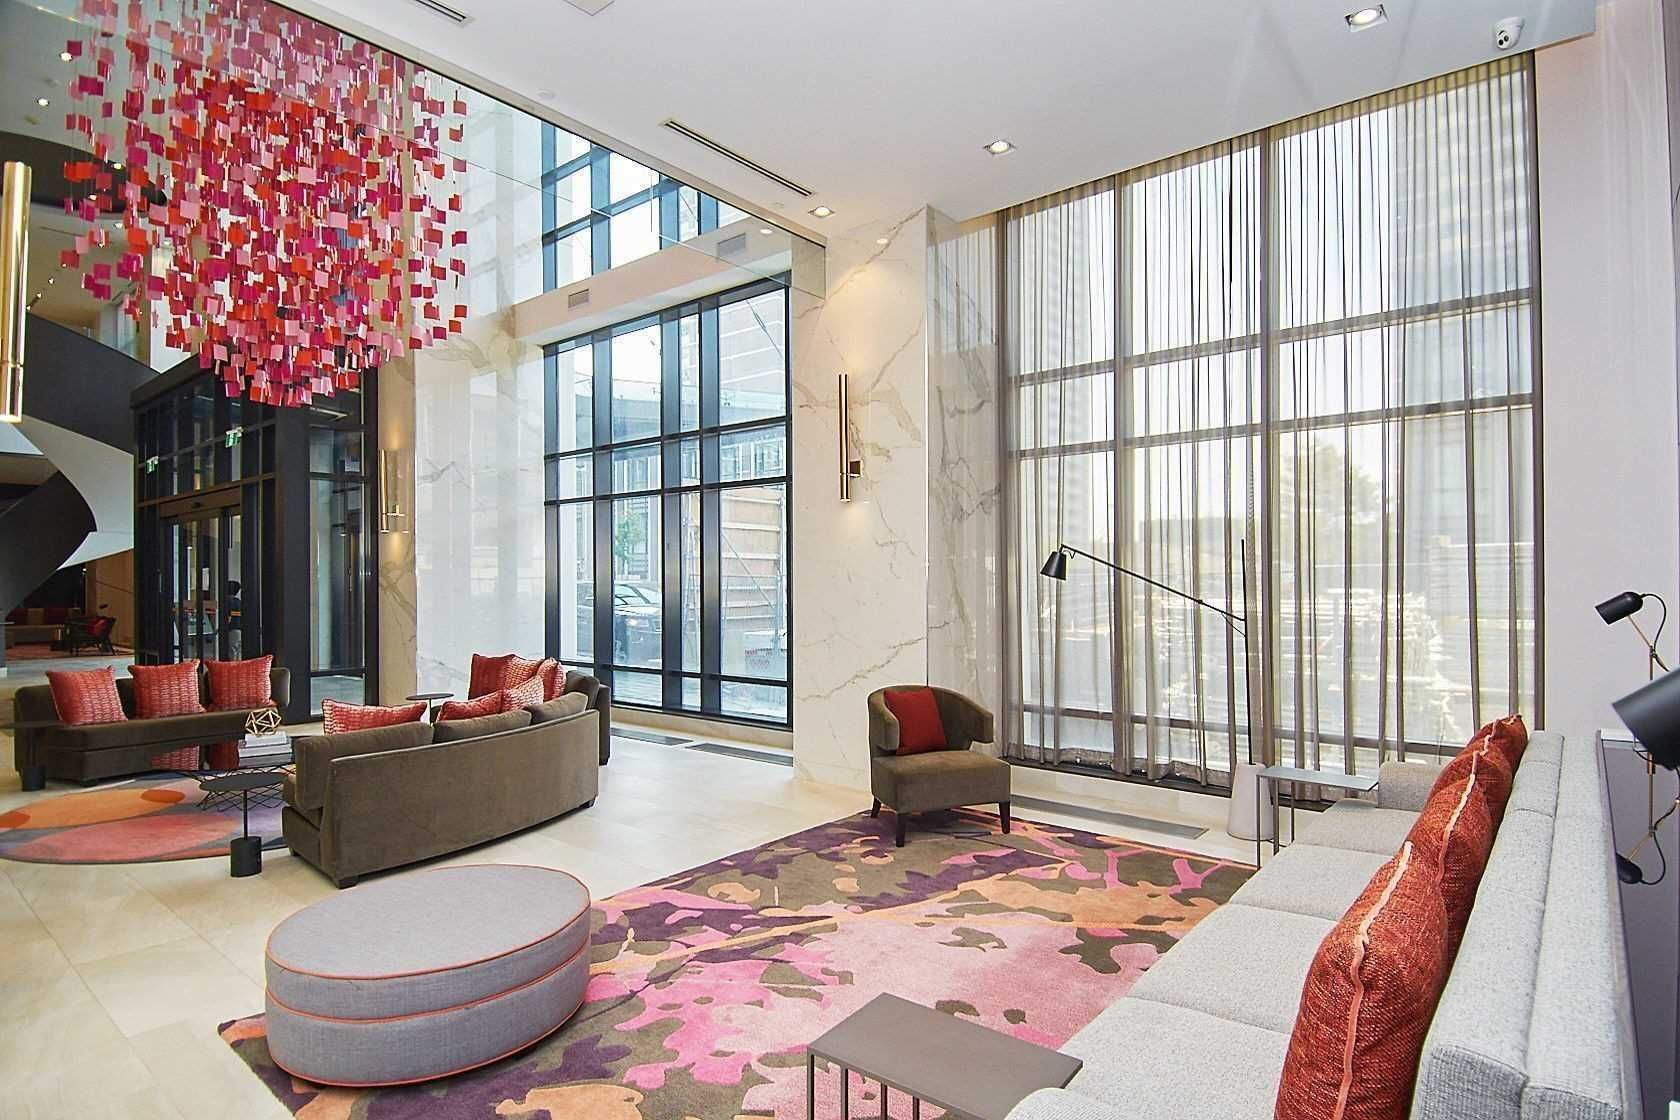 7 Mabelle Ave, unit 804 for sale in Toronto - image #2